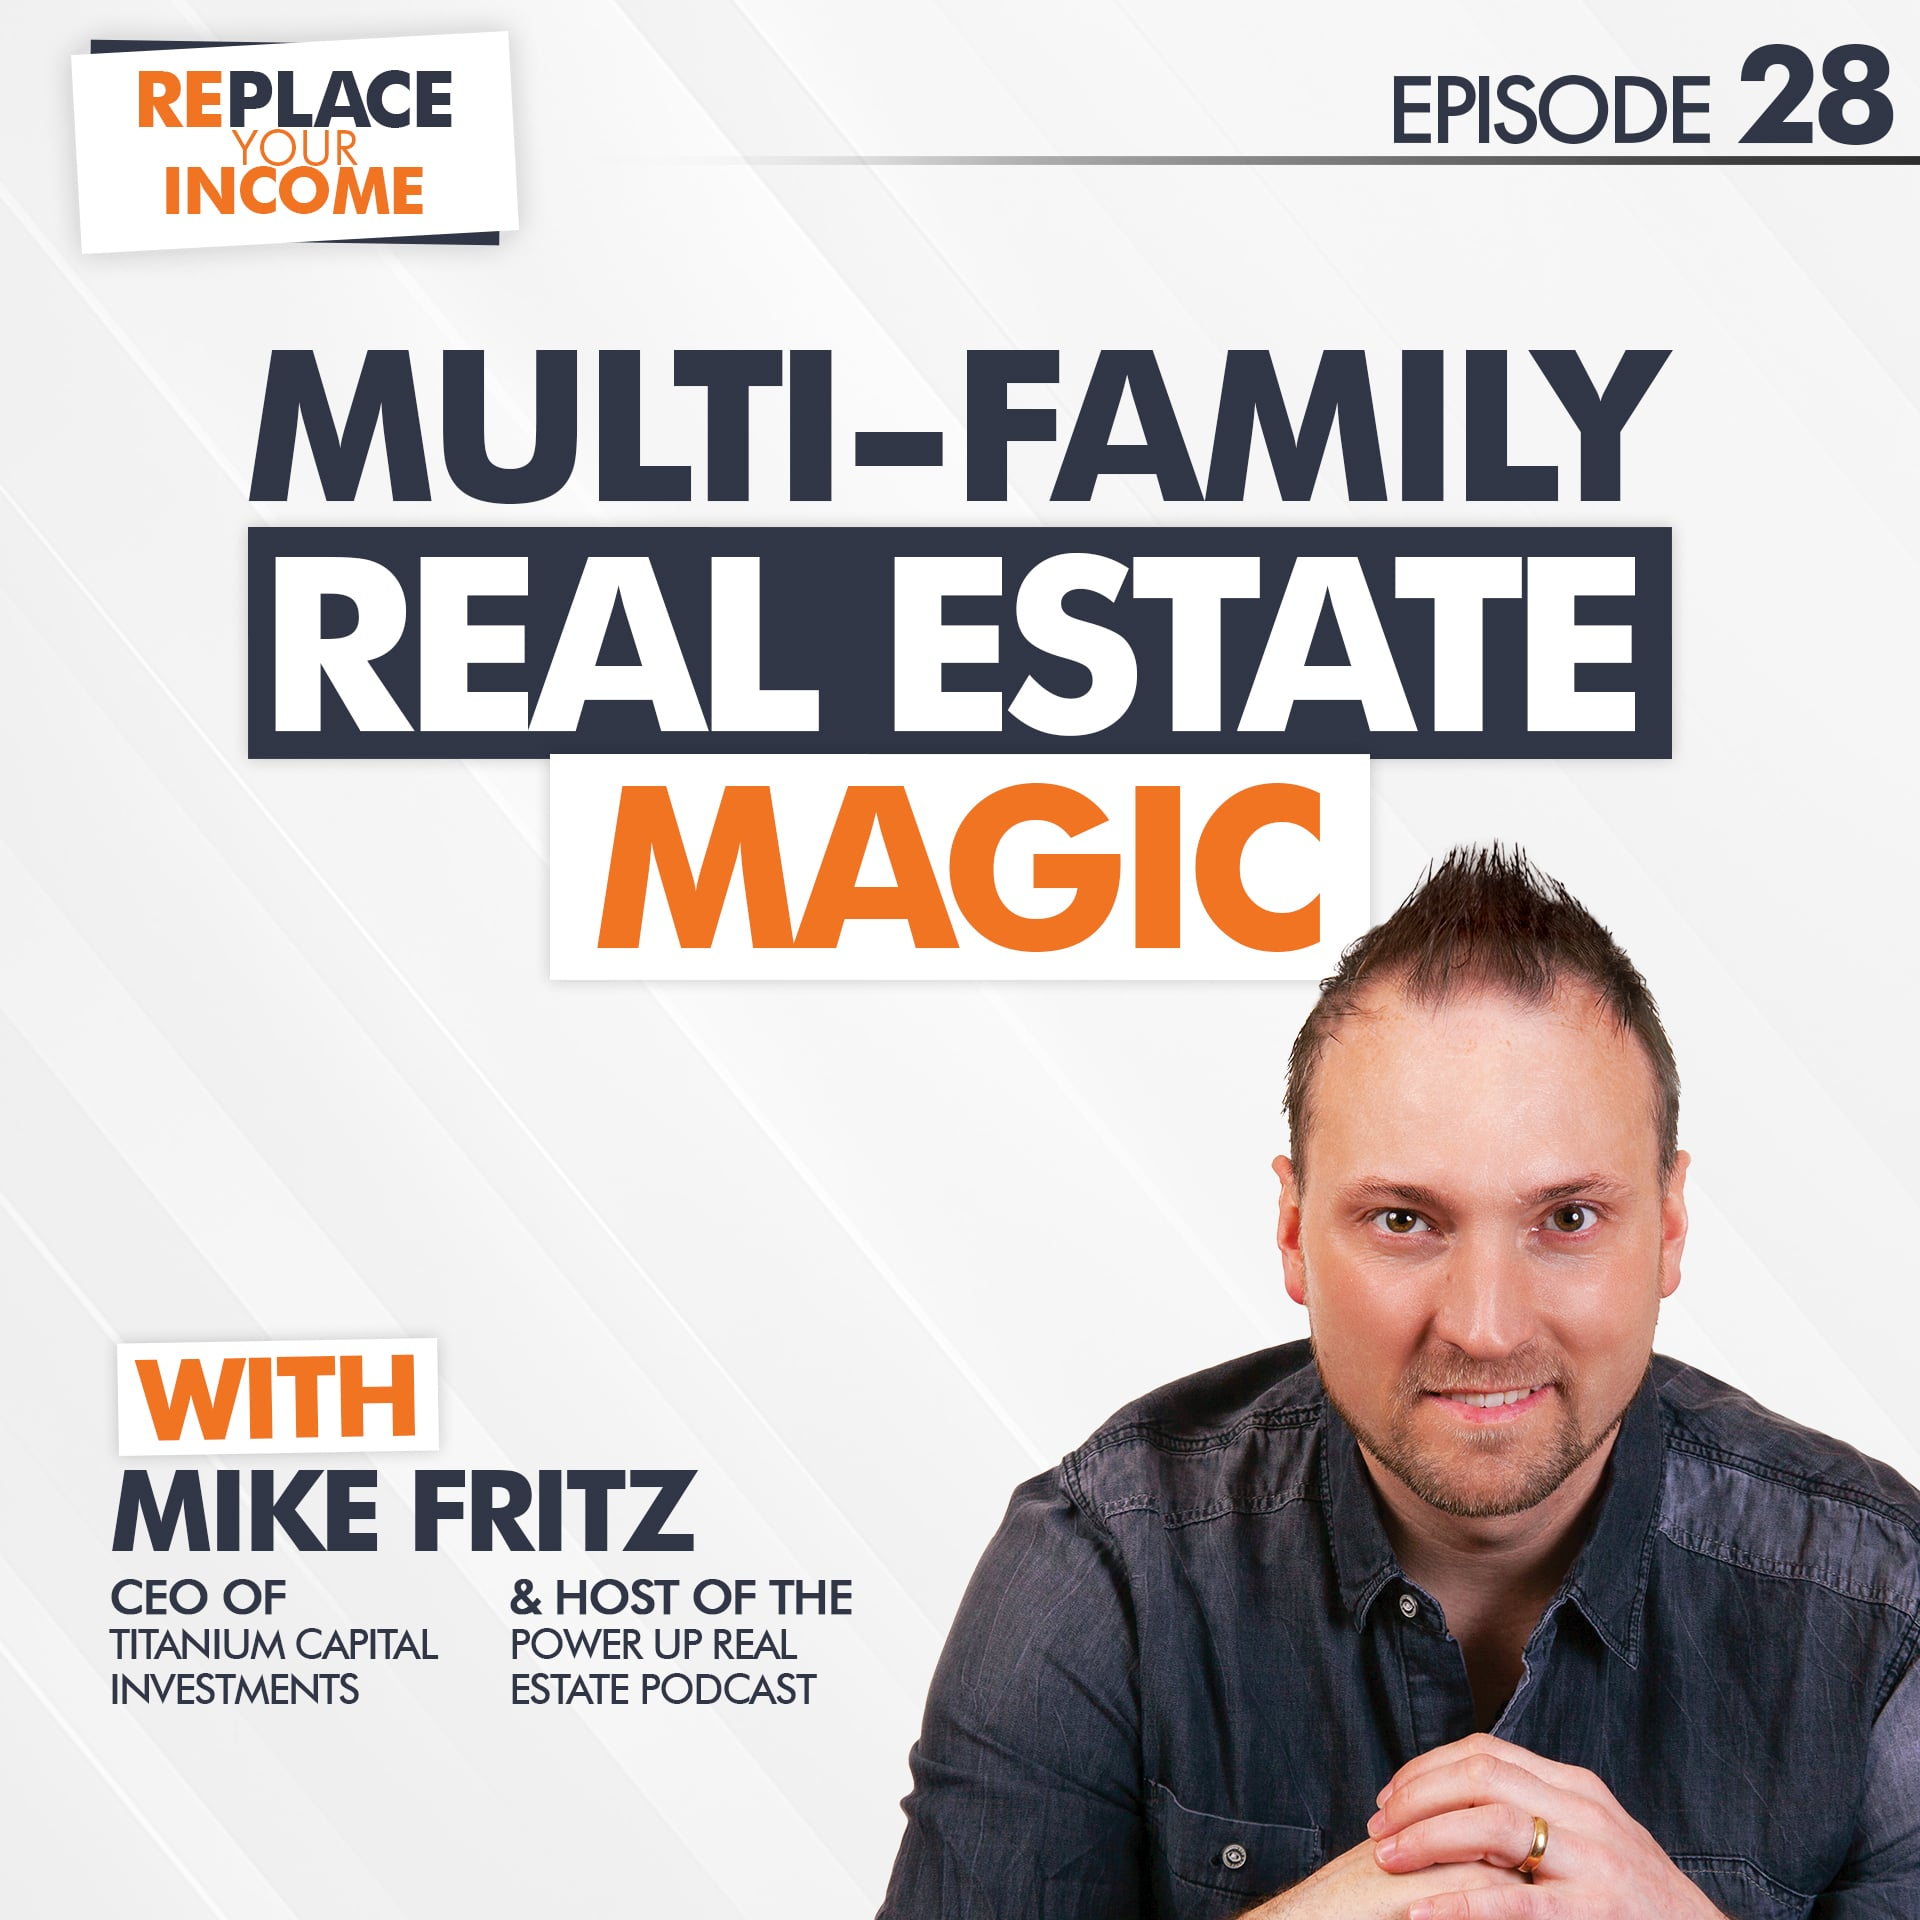 Multi-family Real Estate Magic With Mike Fritz, Episode 28 of the Replace Your Income Podcast